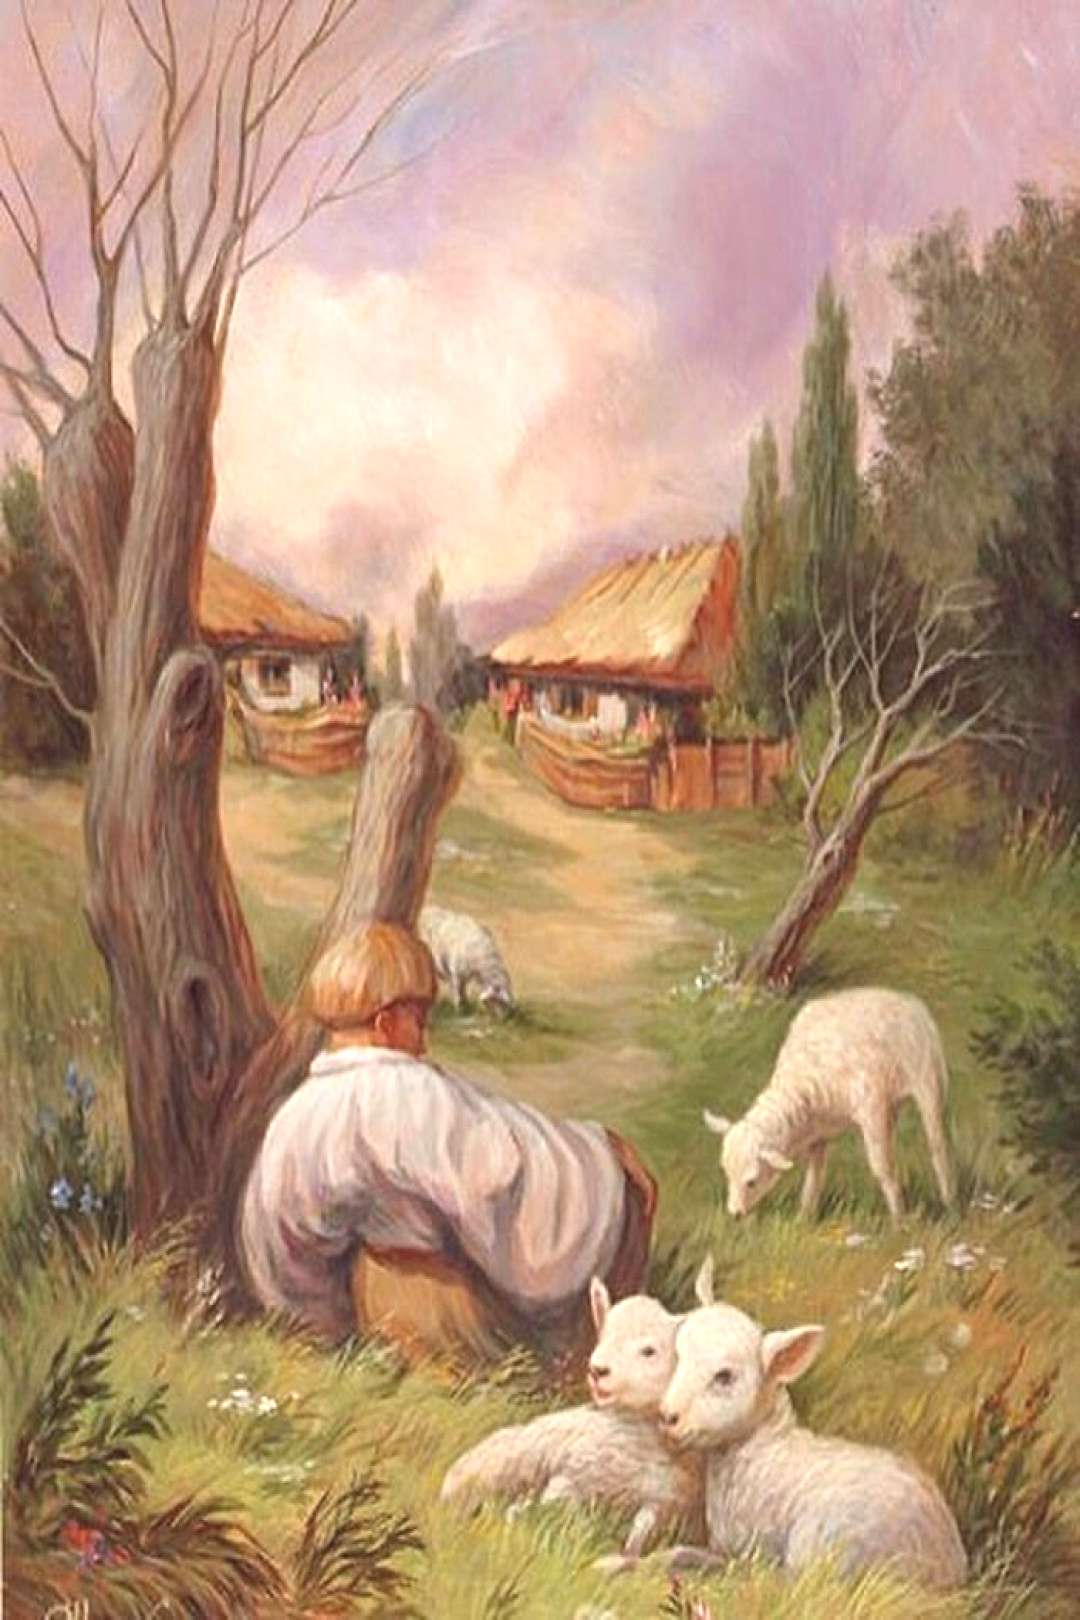 Optical illusions are always fun and fascinating as they trick our brain into perceiving things dif